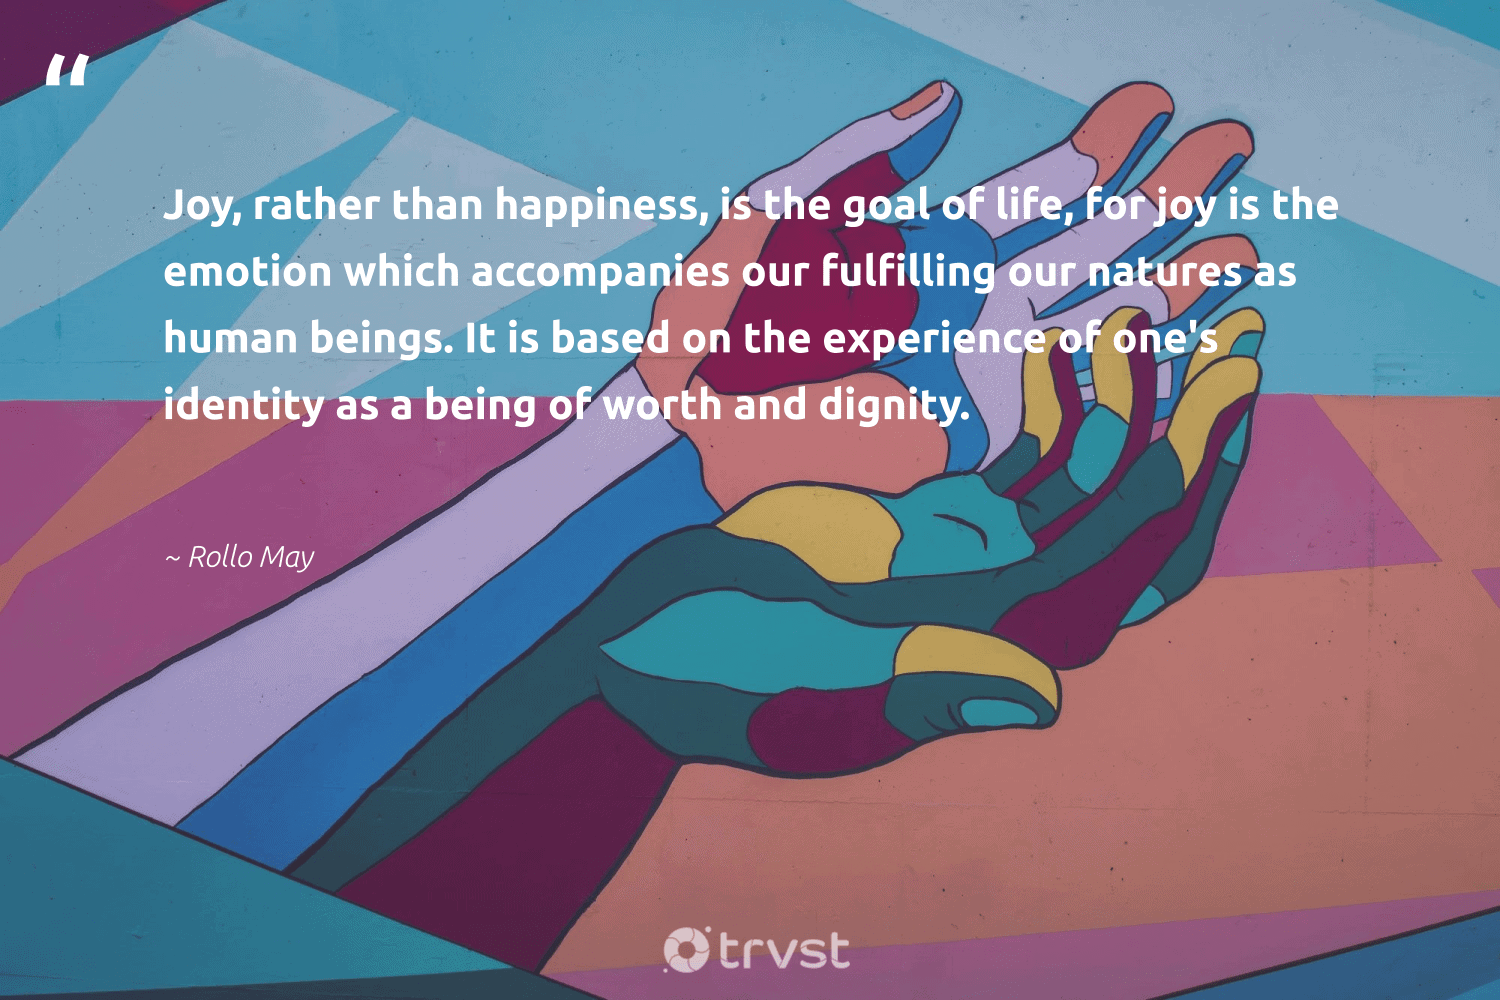 """""""Joy, rather than happiness, is the goal of life, for joy is the emotion which accompanies our fulfilling our natures as human beings. It is based on the experience of one's identity as a being of worth and dignity.""""  - Rollo May #trvst #quotes #happiness #begreat #socialimpact #mindset #dogood #health #collectiveaction #changemakers #takeaction #nevergiveup"""